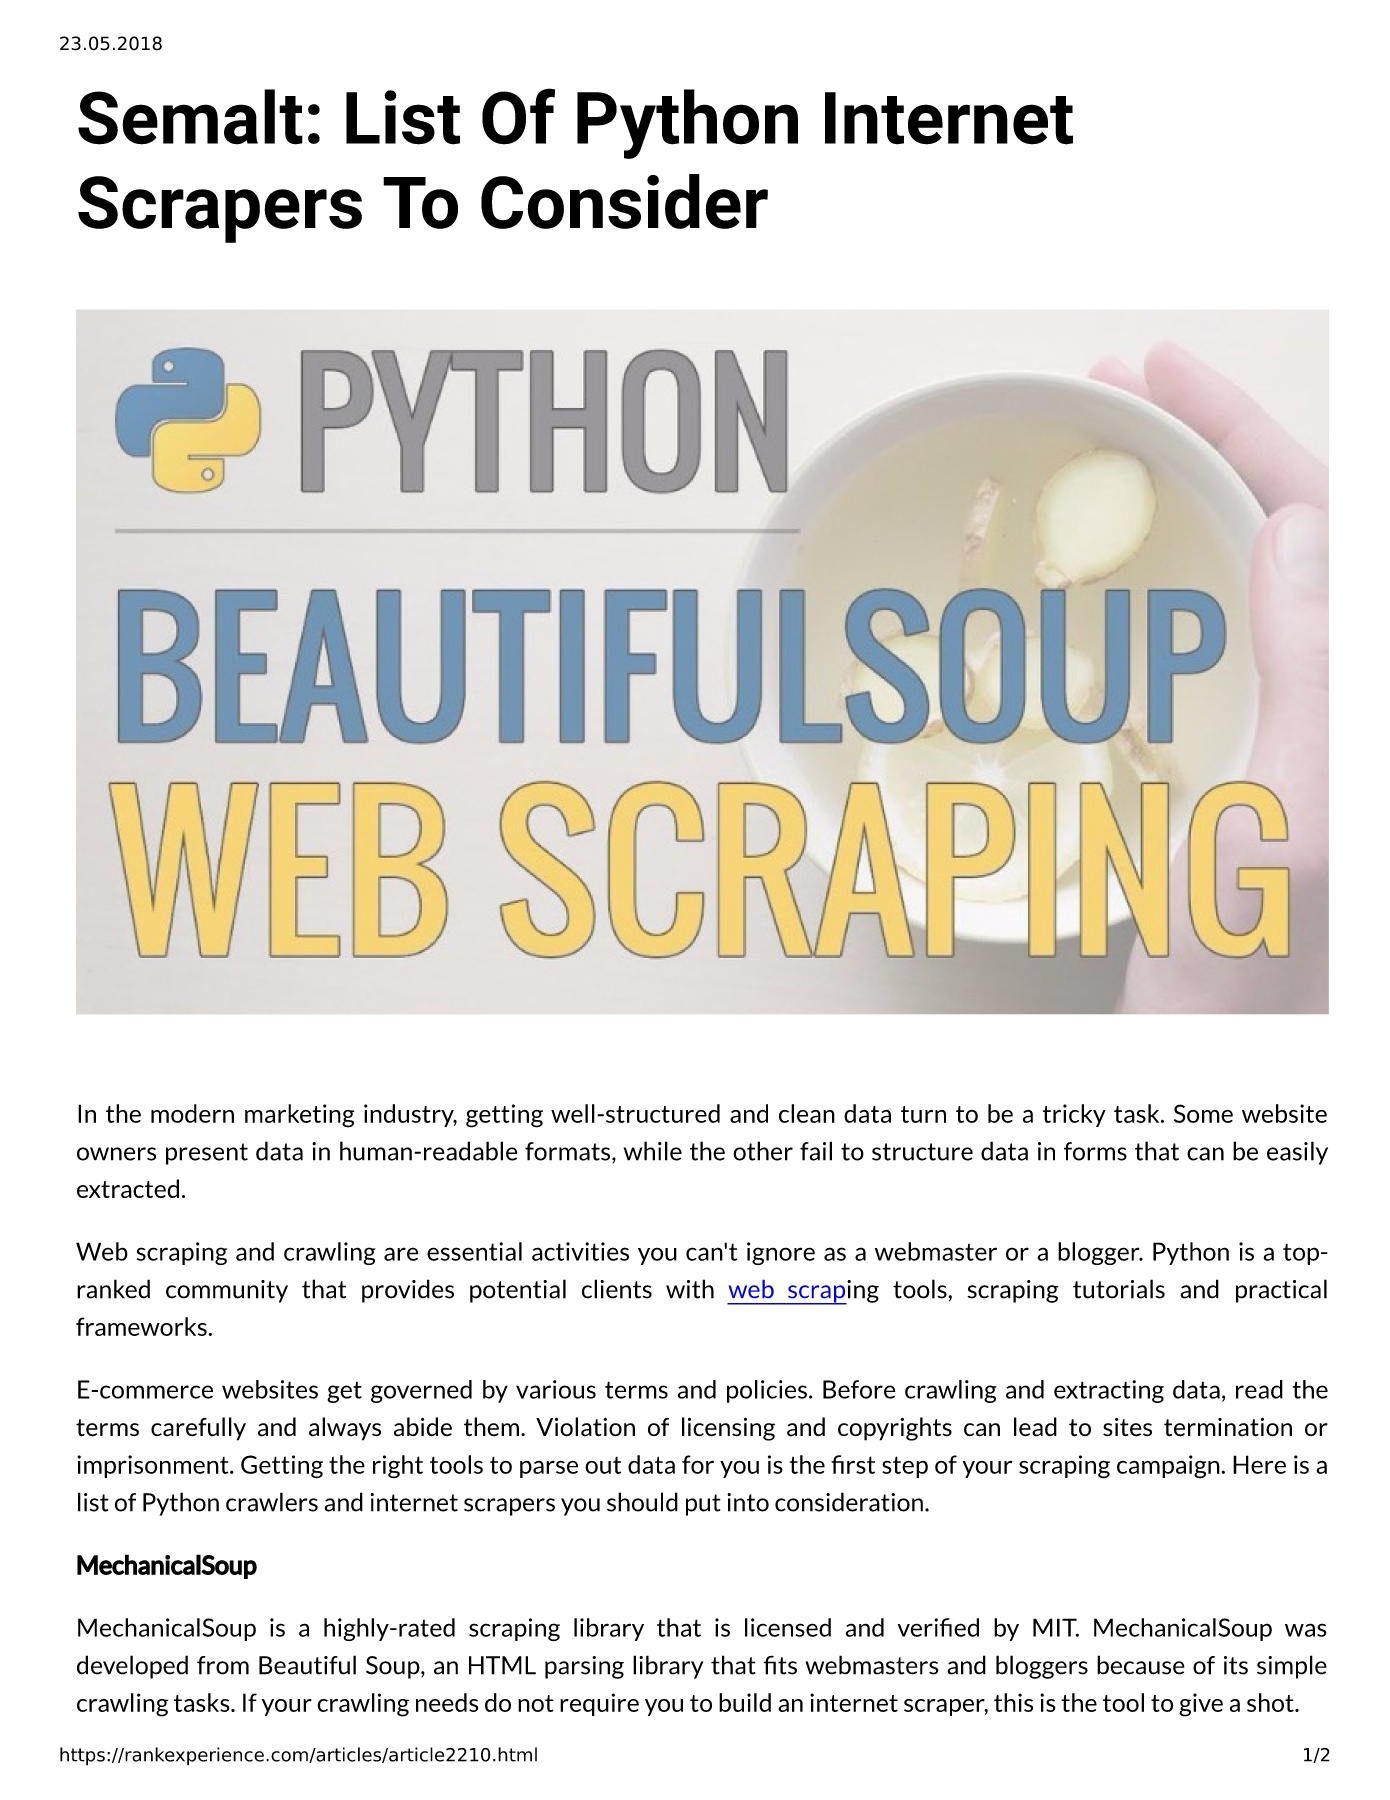 Semalt: List Of Python Internet Scrapers To Consider Pages 1 - 2